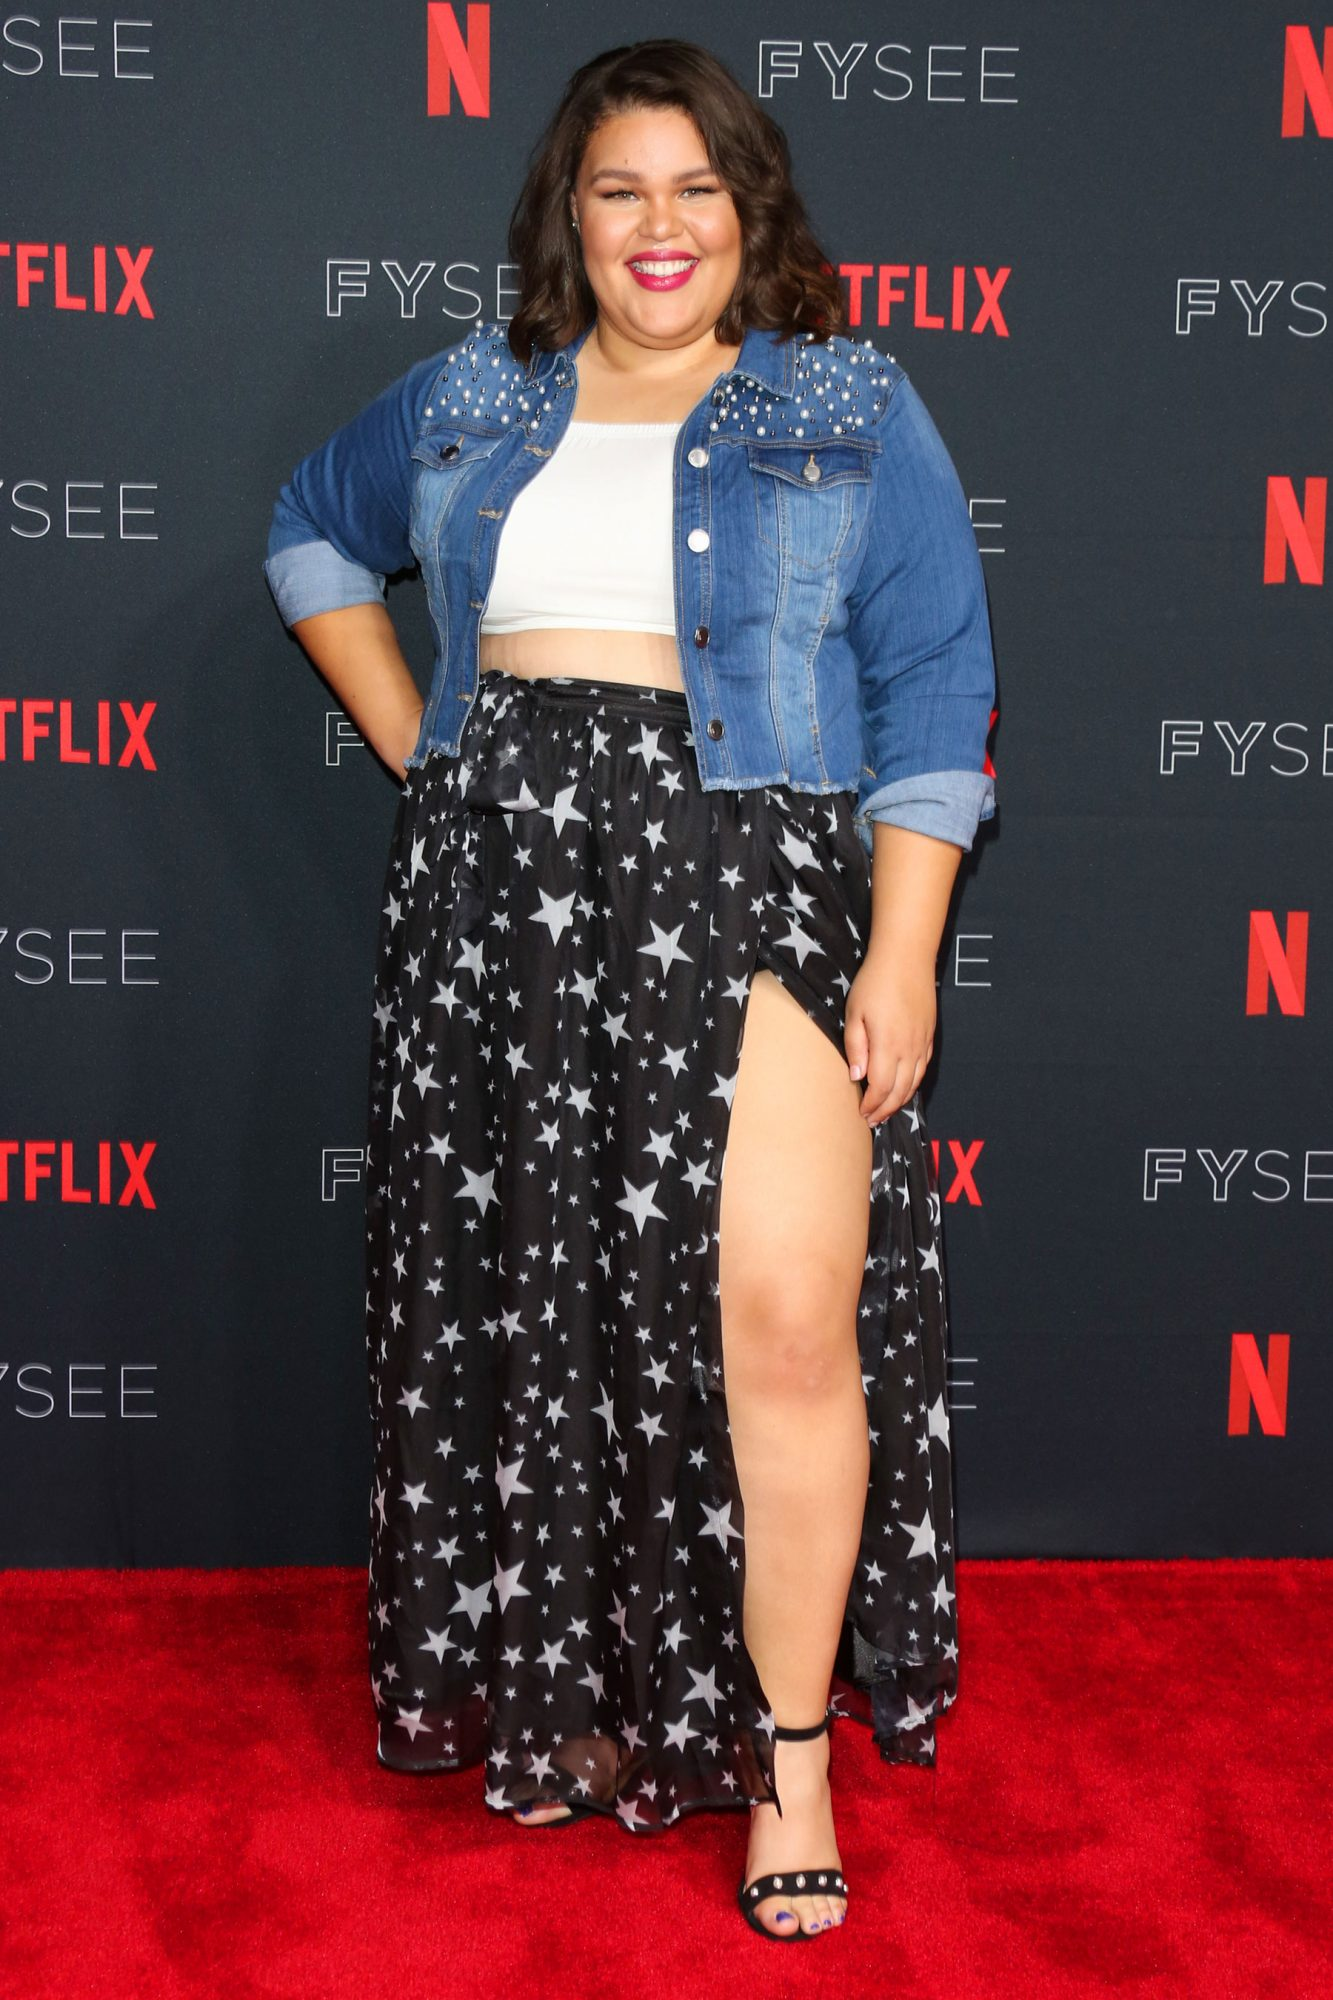 """#NETFLIXFYSEE For Your Consideration Event For """"GLOW"""""""